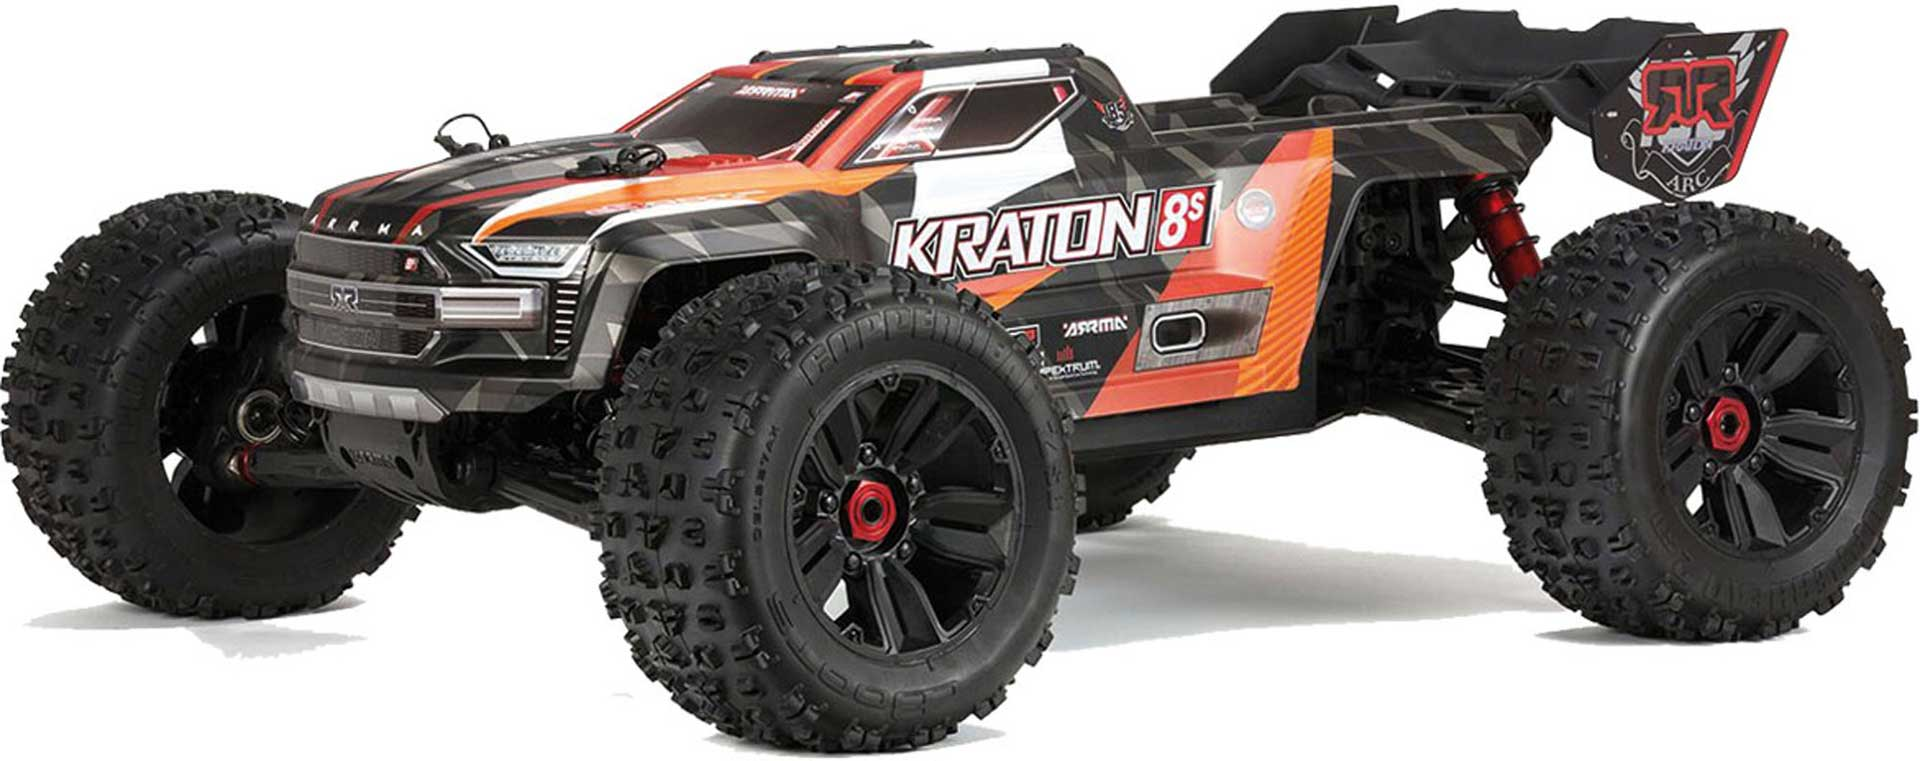 Arrma 1/5 KRATON 4WD 8S BLX Speed Monster Truck RTR:ORNG